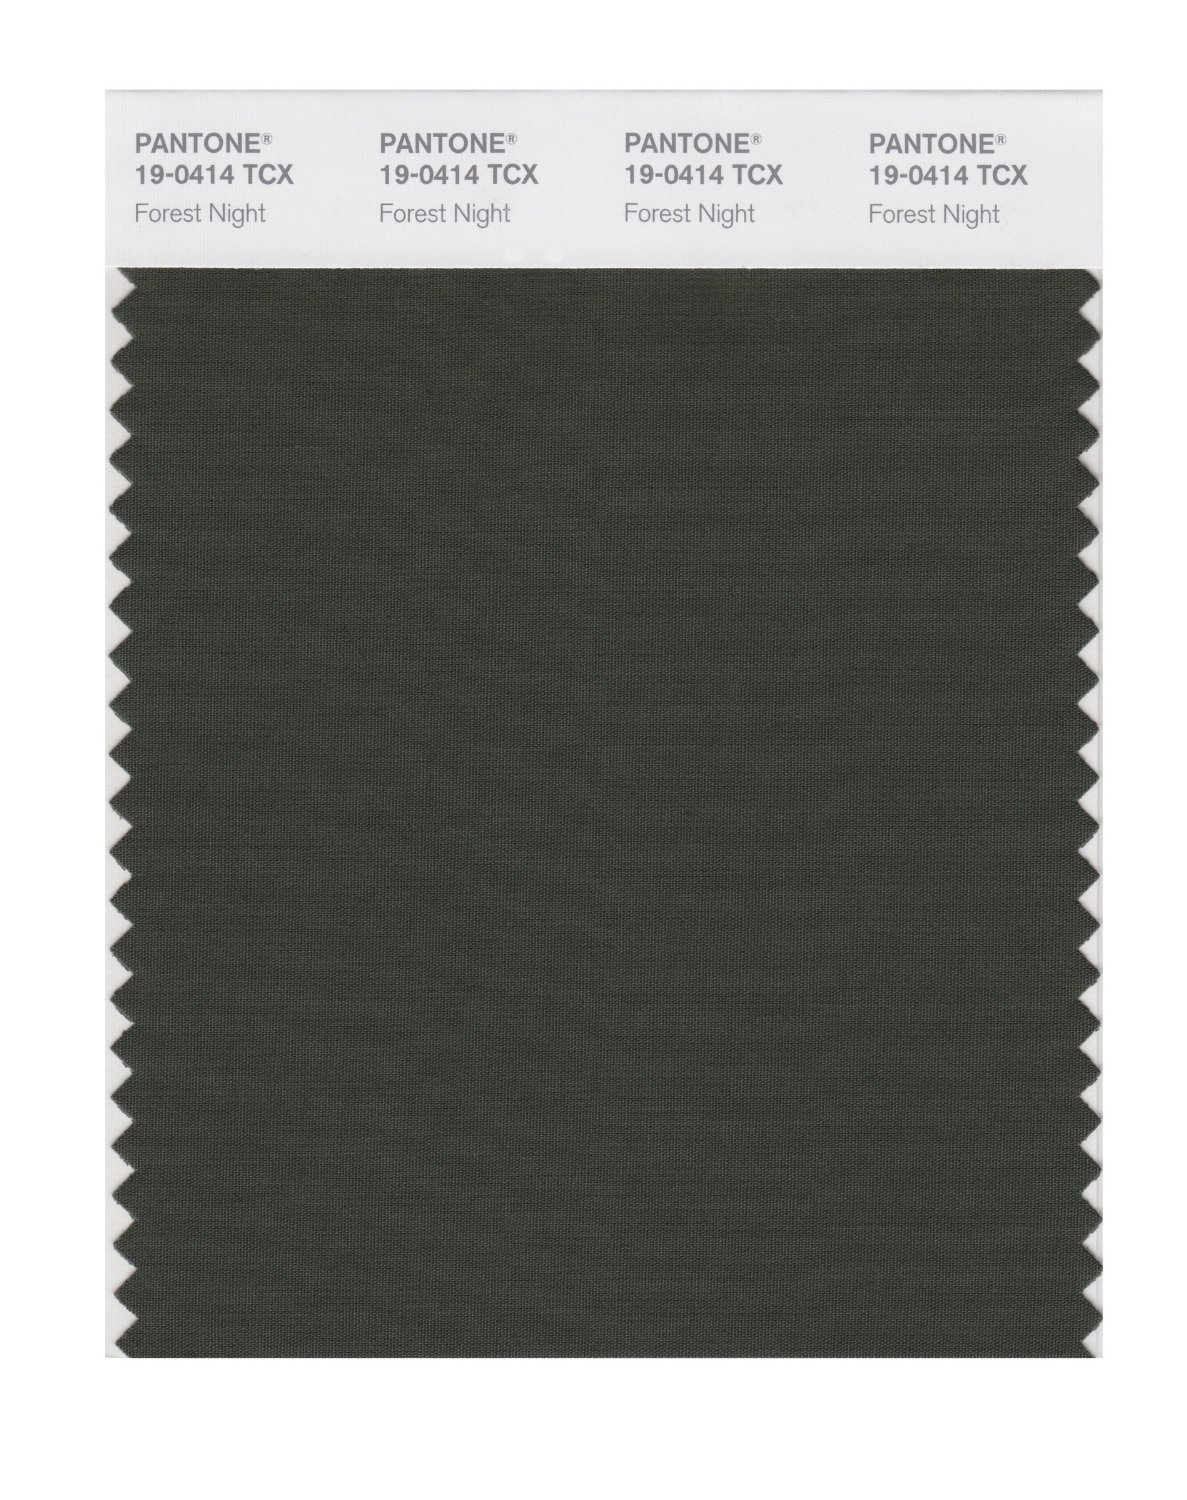 Pantone Smart Swatch 19-0414 Forest Night